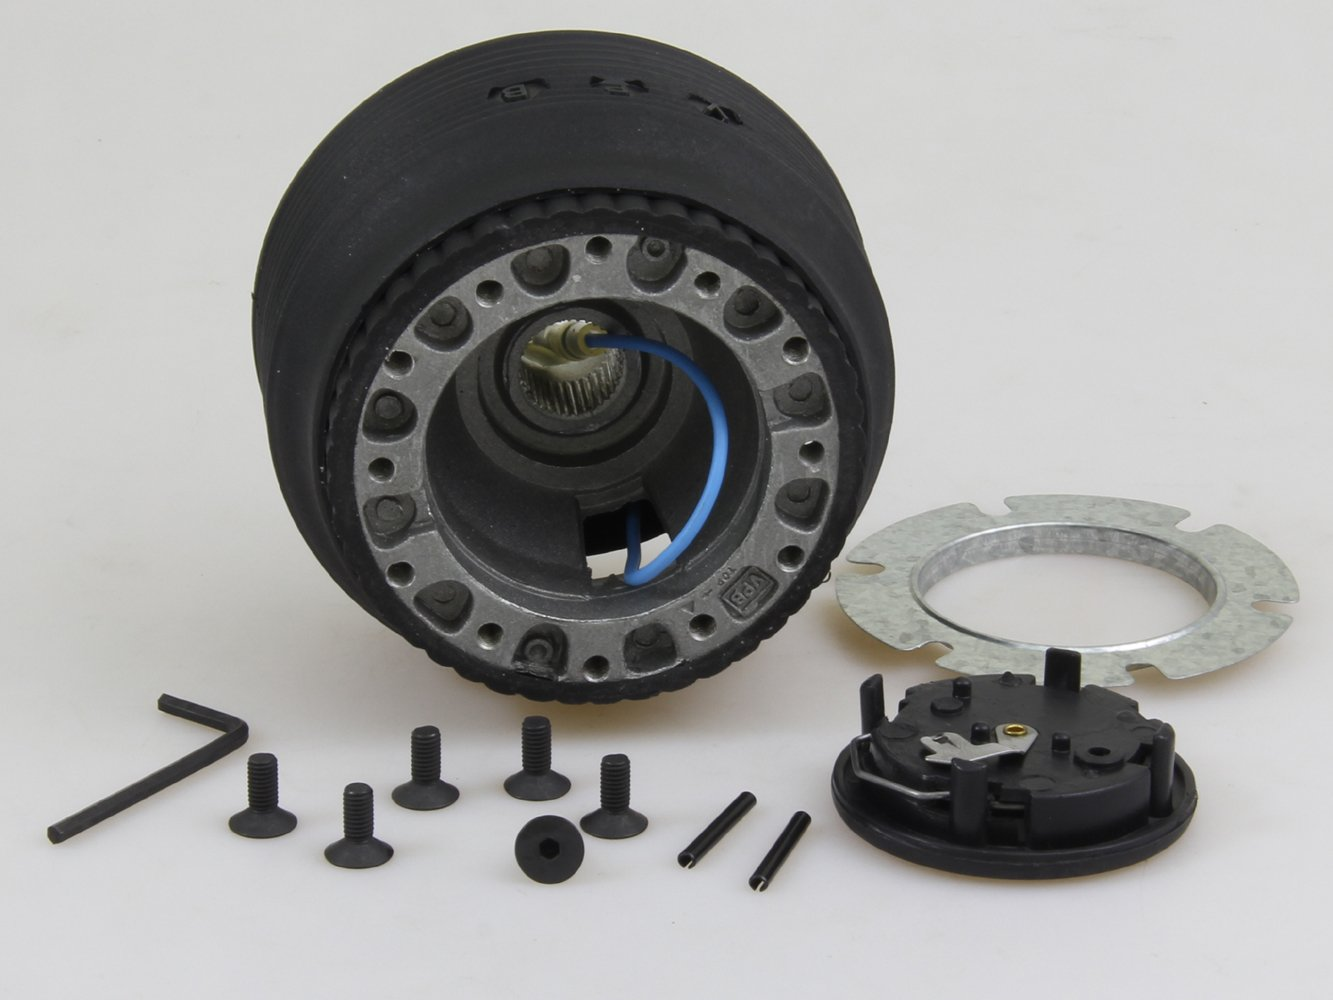 BOSS KIT STEERING HUB FIT FOR NISSAN DATSUN 240Z 260Z 280Z 510 620 Pick-up Truck Pai Square